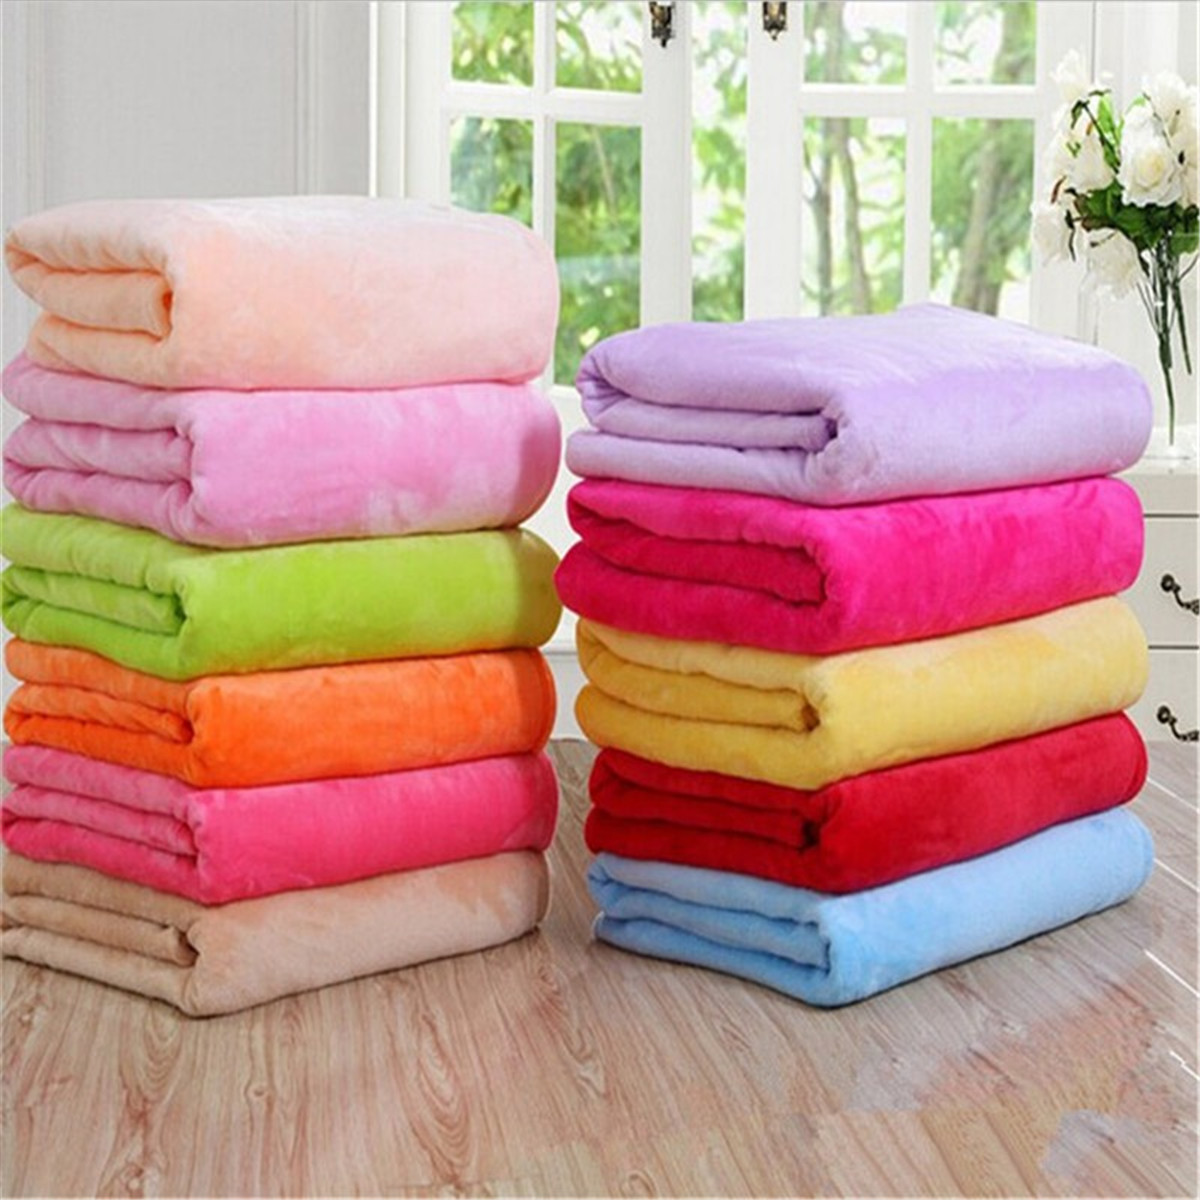 150x100cm Flannel Blanket Sofa Bed Soft Coral Fleece Bedding Article